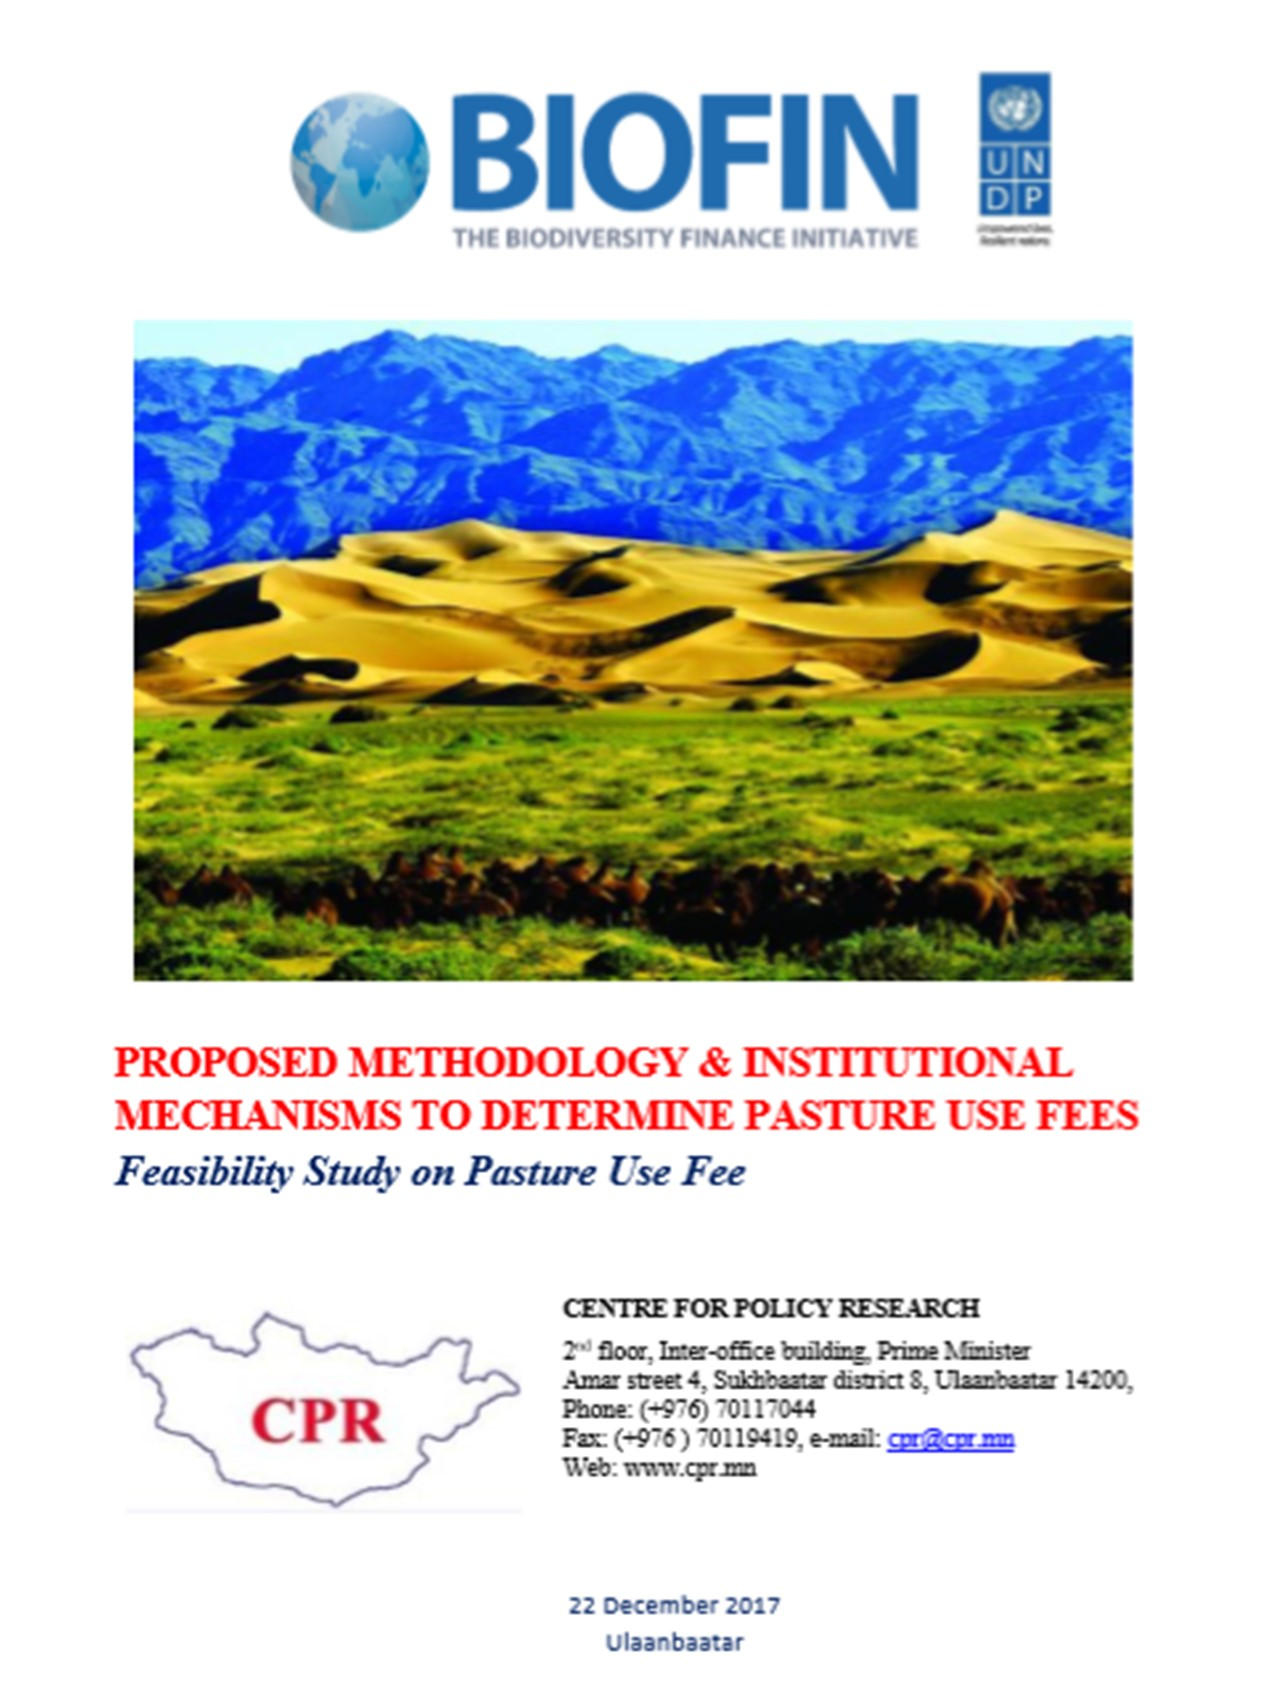 Feasibility Study on Pasture Use Fee - Mongolia